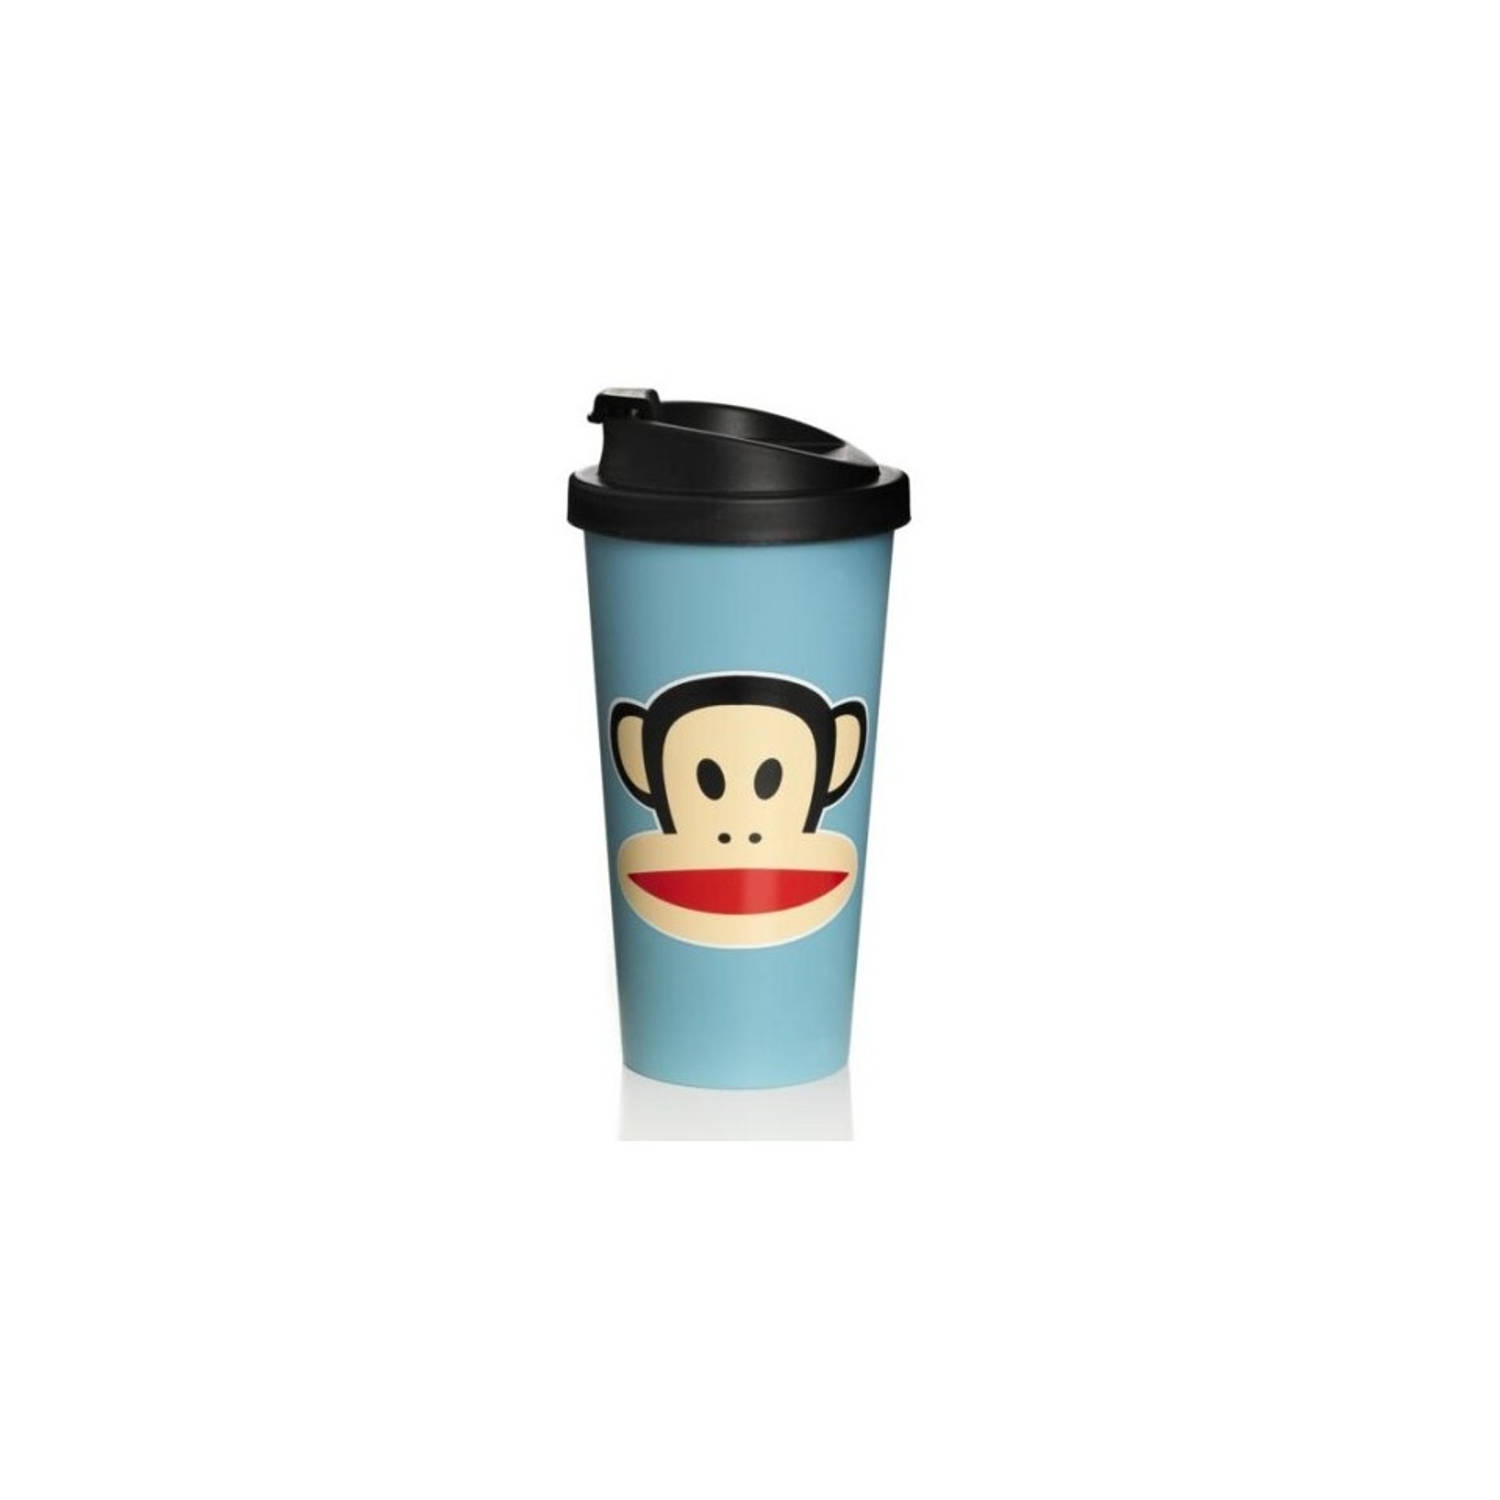 Paul Frank Thermobeker Cup To Go Blauw